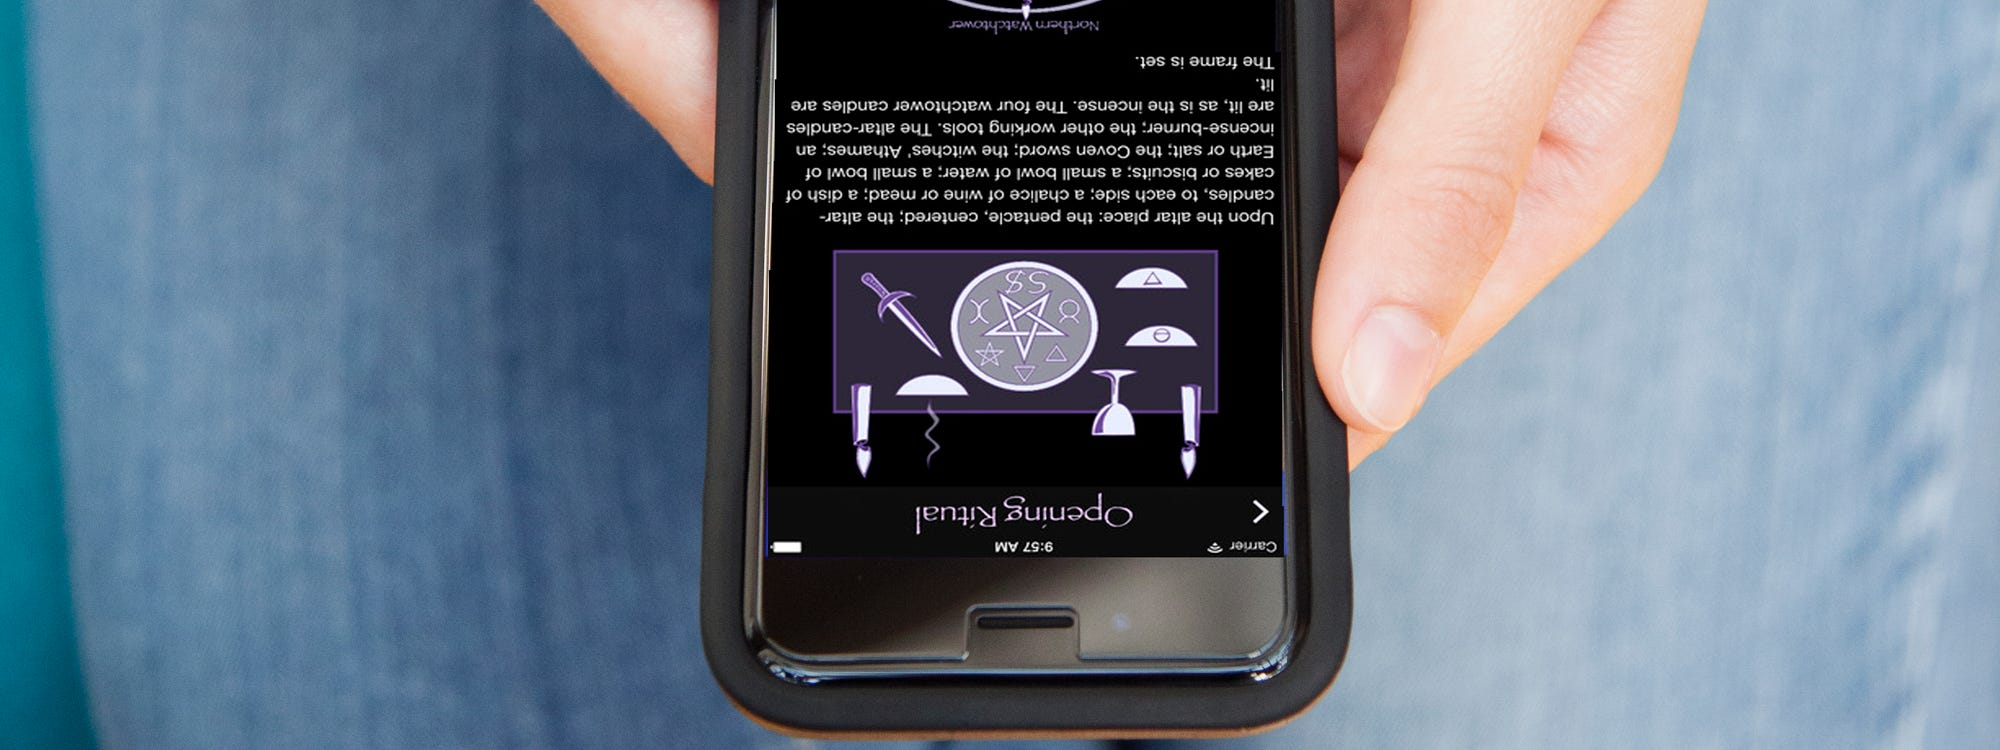 Best Apps For Meditation Horoscope Spiritual Practice Image Moonphasesdiagramjpg Term Side Of Card